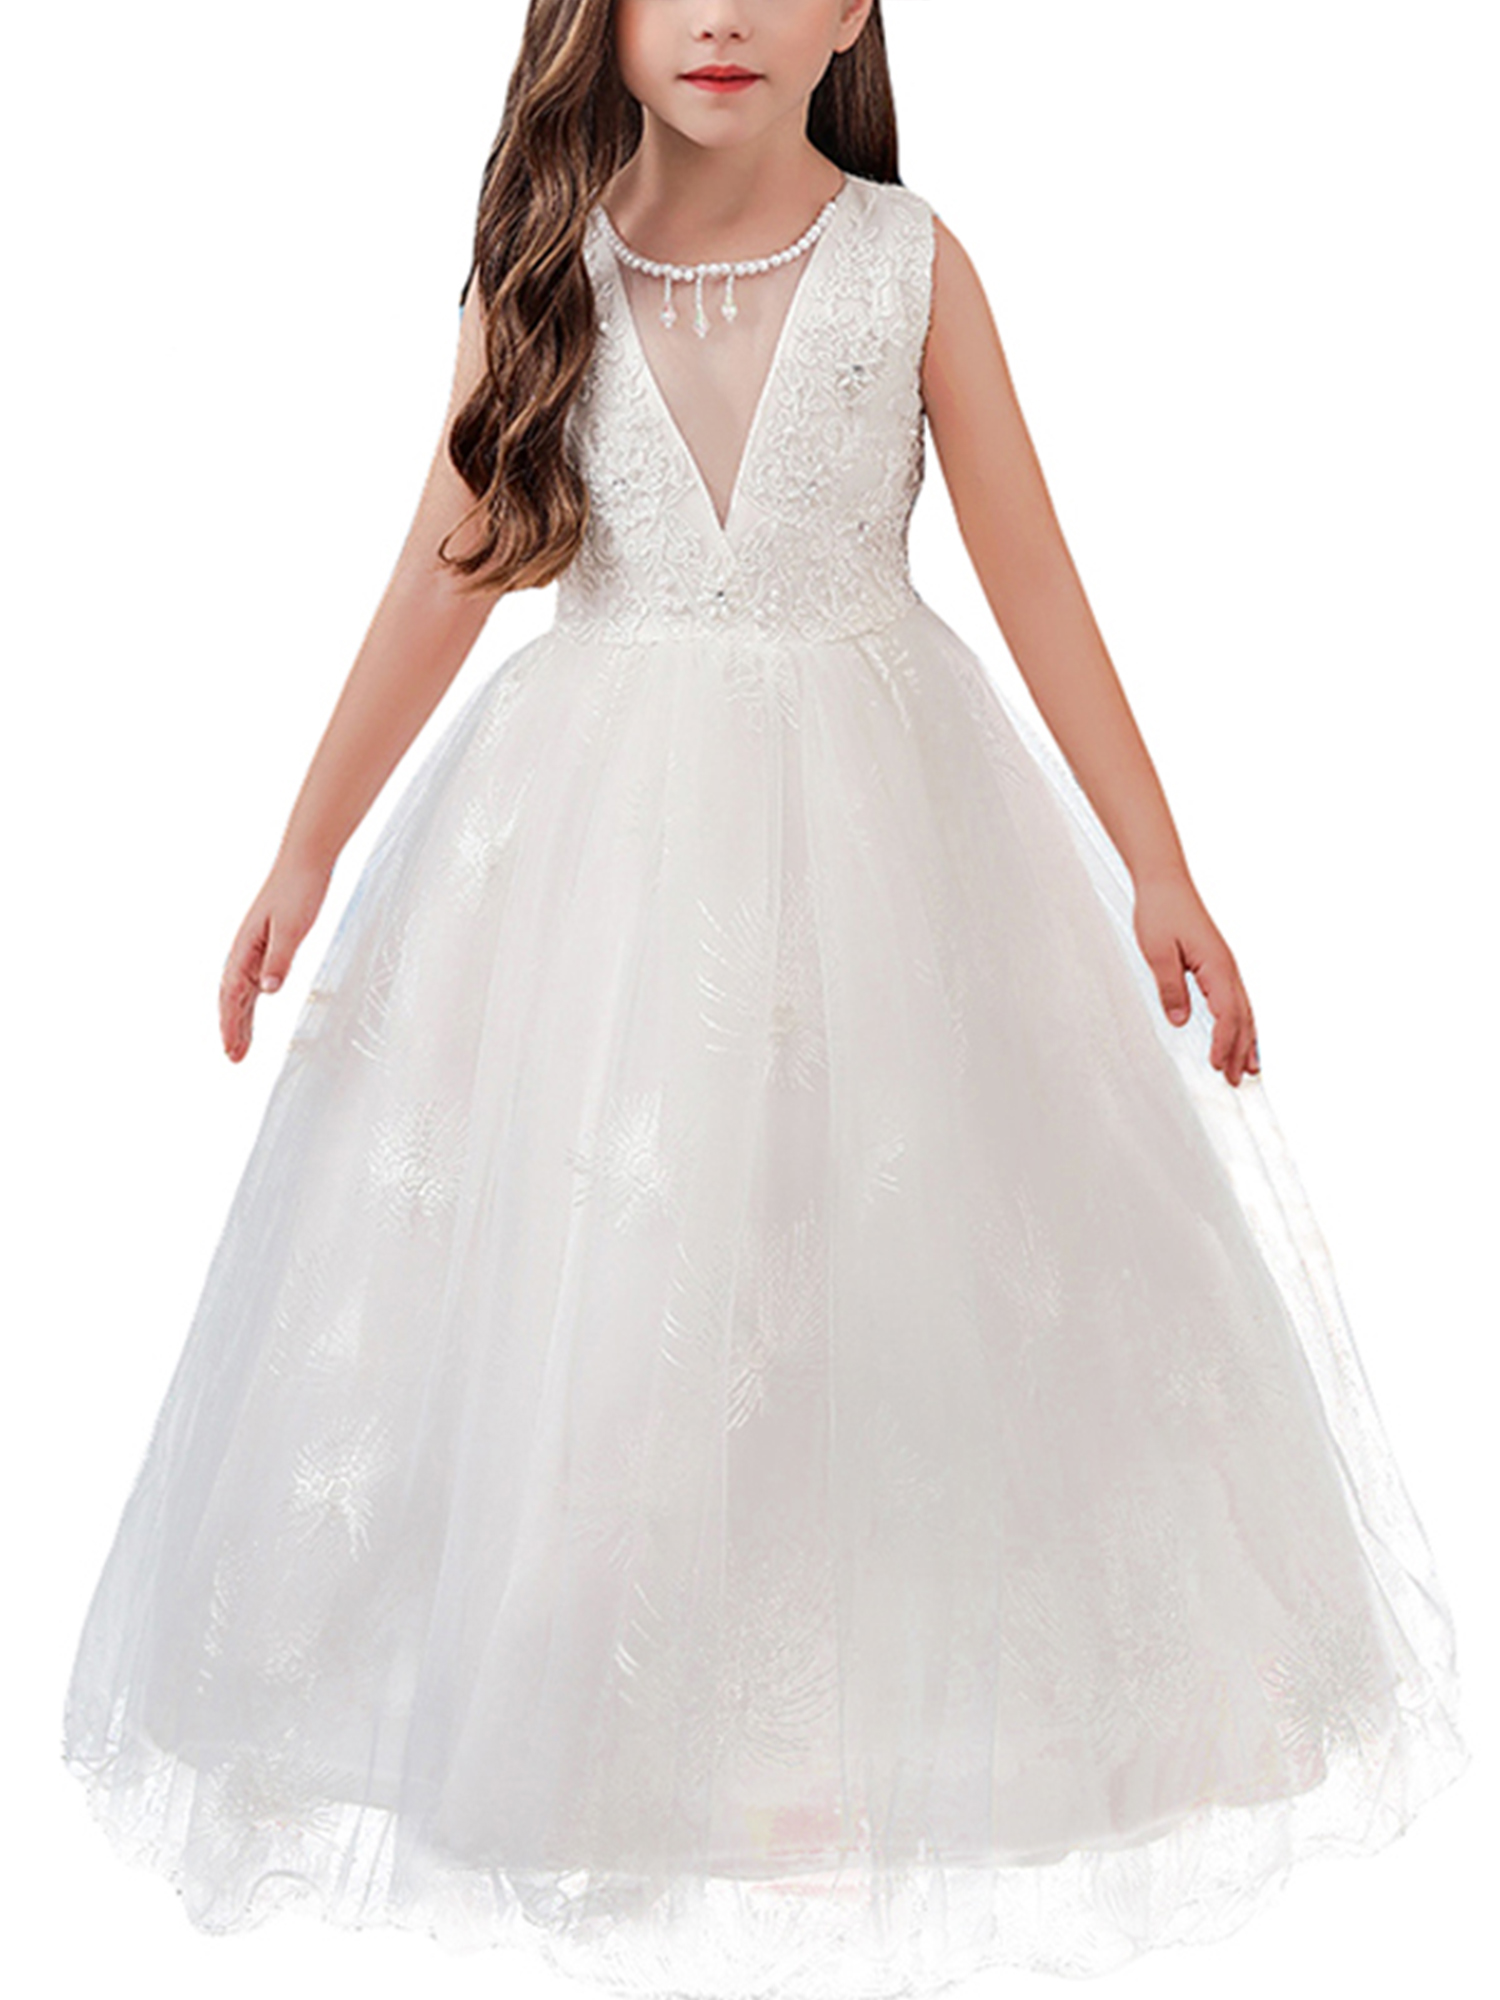 Kids Girls Princess Dress 3//4 Sleeves Maxi Overlay Pageant Wedding Formal Party